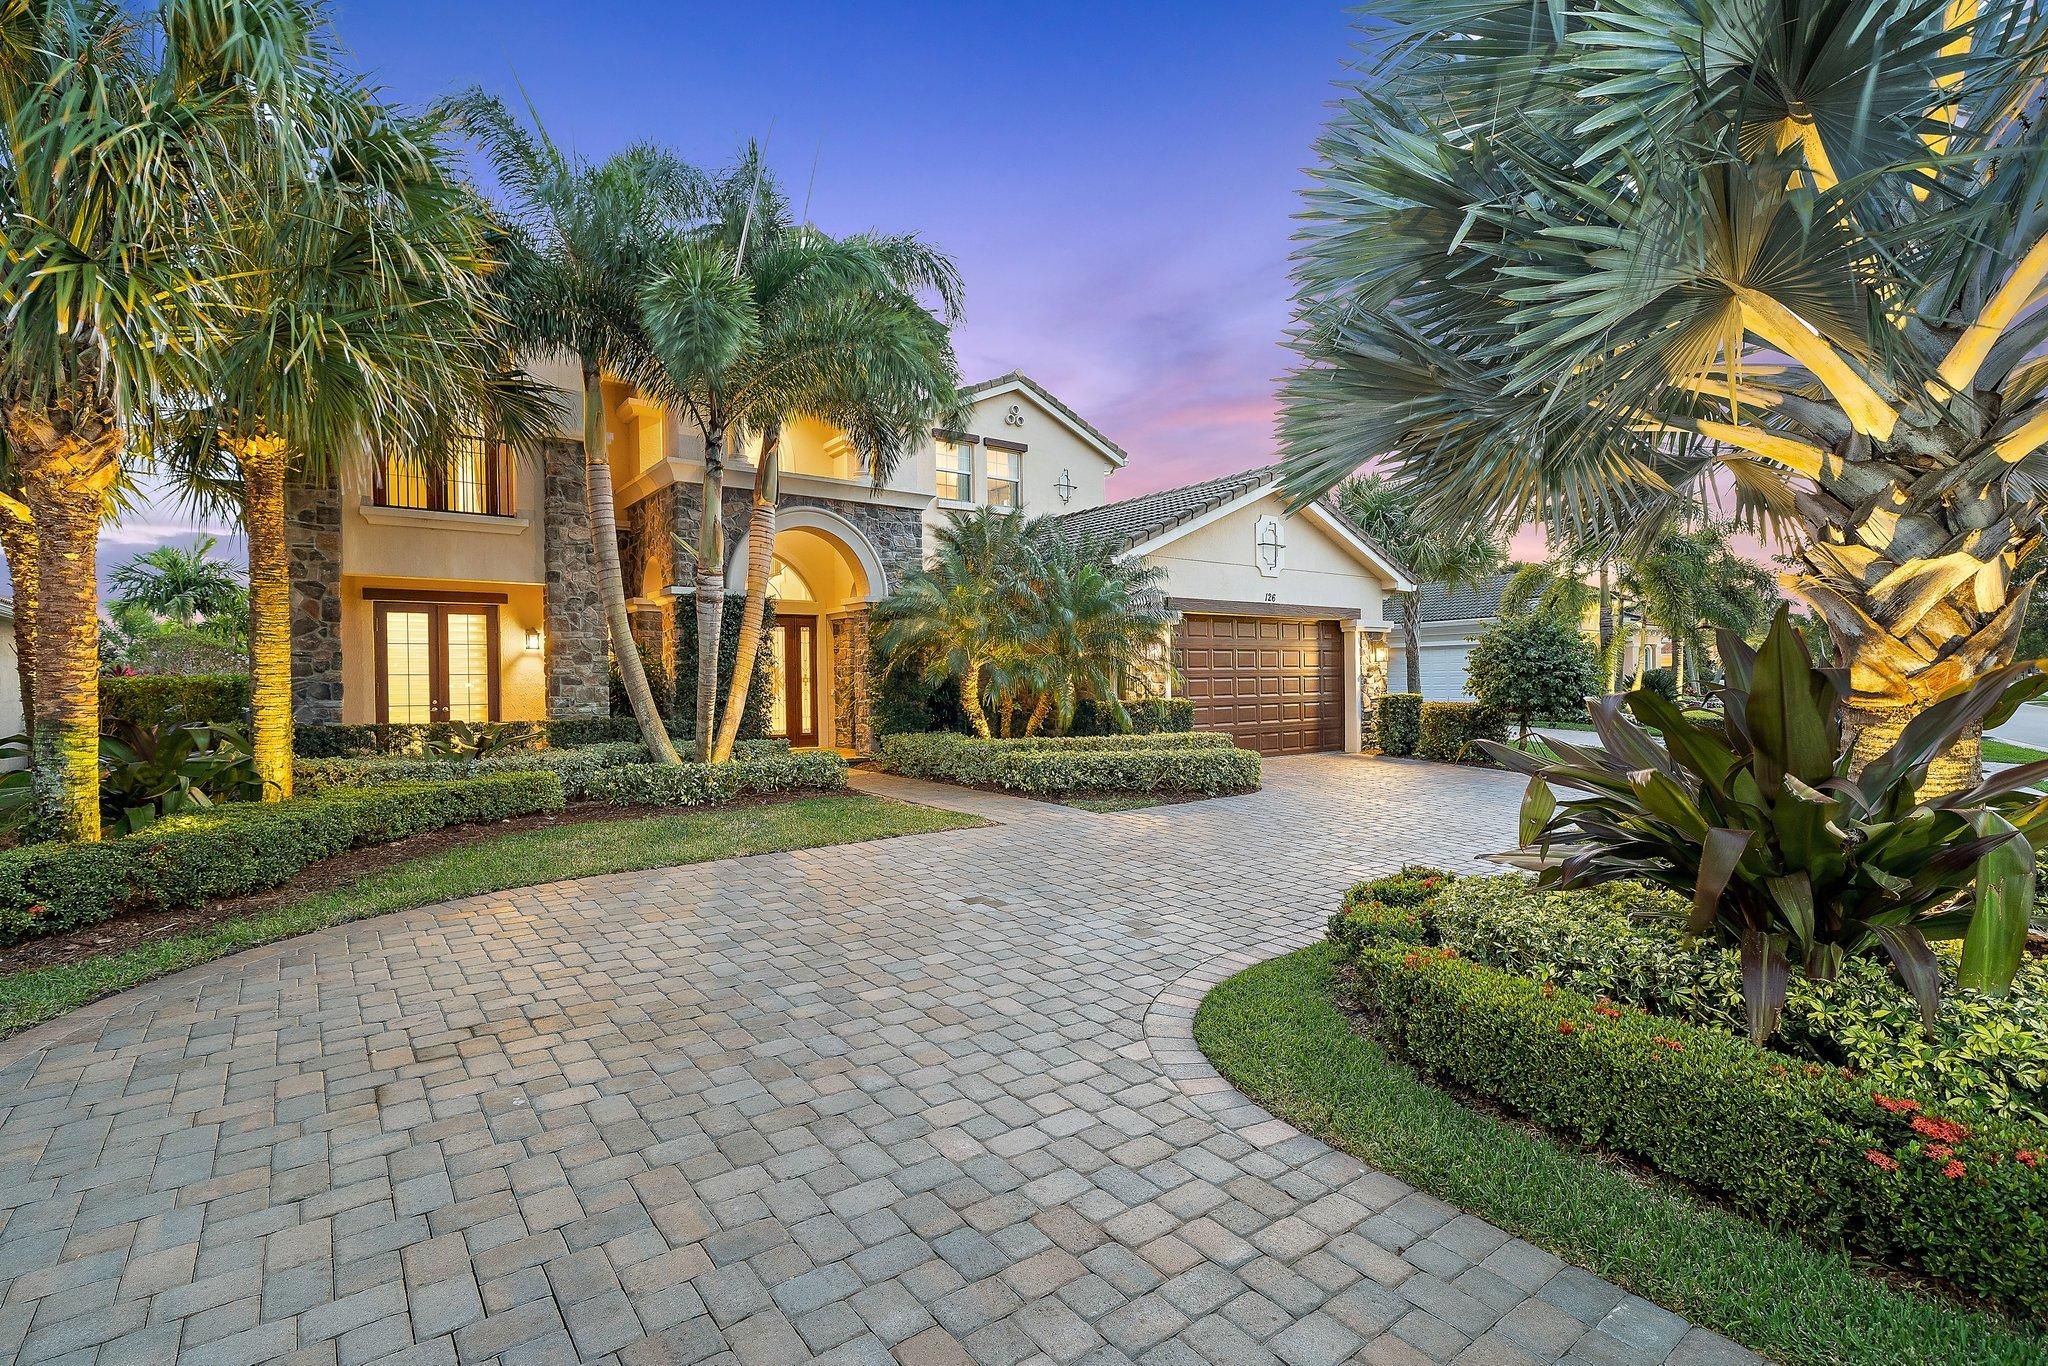 Rare opportunity to own a coveted Treanna floorplan in Prime Jupiter Country Club location (South exposure, lake + golf views, away from main roads).  This custom home has been outfitted by a top interior designer and features marble + wood flooring, craftsman woodwork +highest end design finishes.  Grand entry leads to formal living room w/ fireplace and floor to ceiling 2 story windows.  Kitchen features Wolf stove, upgraded appliances + walk in pantry.    Private downstairs office is complemented by built ins.  2 interior staircases offer easy access from BR's to kitchen.  This bright + airy home is designed to blend the best of indoor + outdoor living... Exceptional outdoor area w/ summer kitchen and Views!  Owners suite features lanai, luxe bath + HUGE closets!  Large upstairs loft. Jupiter Country Club offers Greg Norman golf + resort amenities including 6 har tru tennis courts, pickleball, 2 large pools (family + adult), fitness center w/ classes, bocce and formal + casual dining.   Enjoy Country Club living without the high equity costs and fees.  The Club is managed by Club Corp, a premiere resort management company - fabulous reciprocal privileges! Residents of JCC enjoy an active lifestyle set amidst a certified audubon preserve.   Gas lit sidewalks throughout the community, great for walking!  Jupiter Country Club is northern Palm Beach County's newest golf community.   Close to best beaches, shopping, dining, sport, medical + cultural venues.   All A rated schools!  You will love living here...